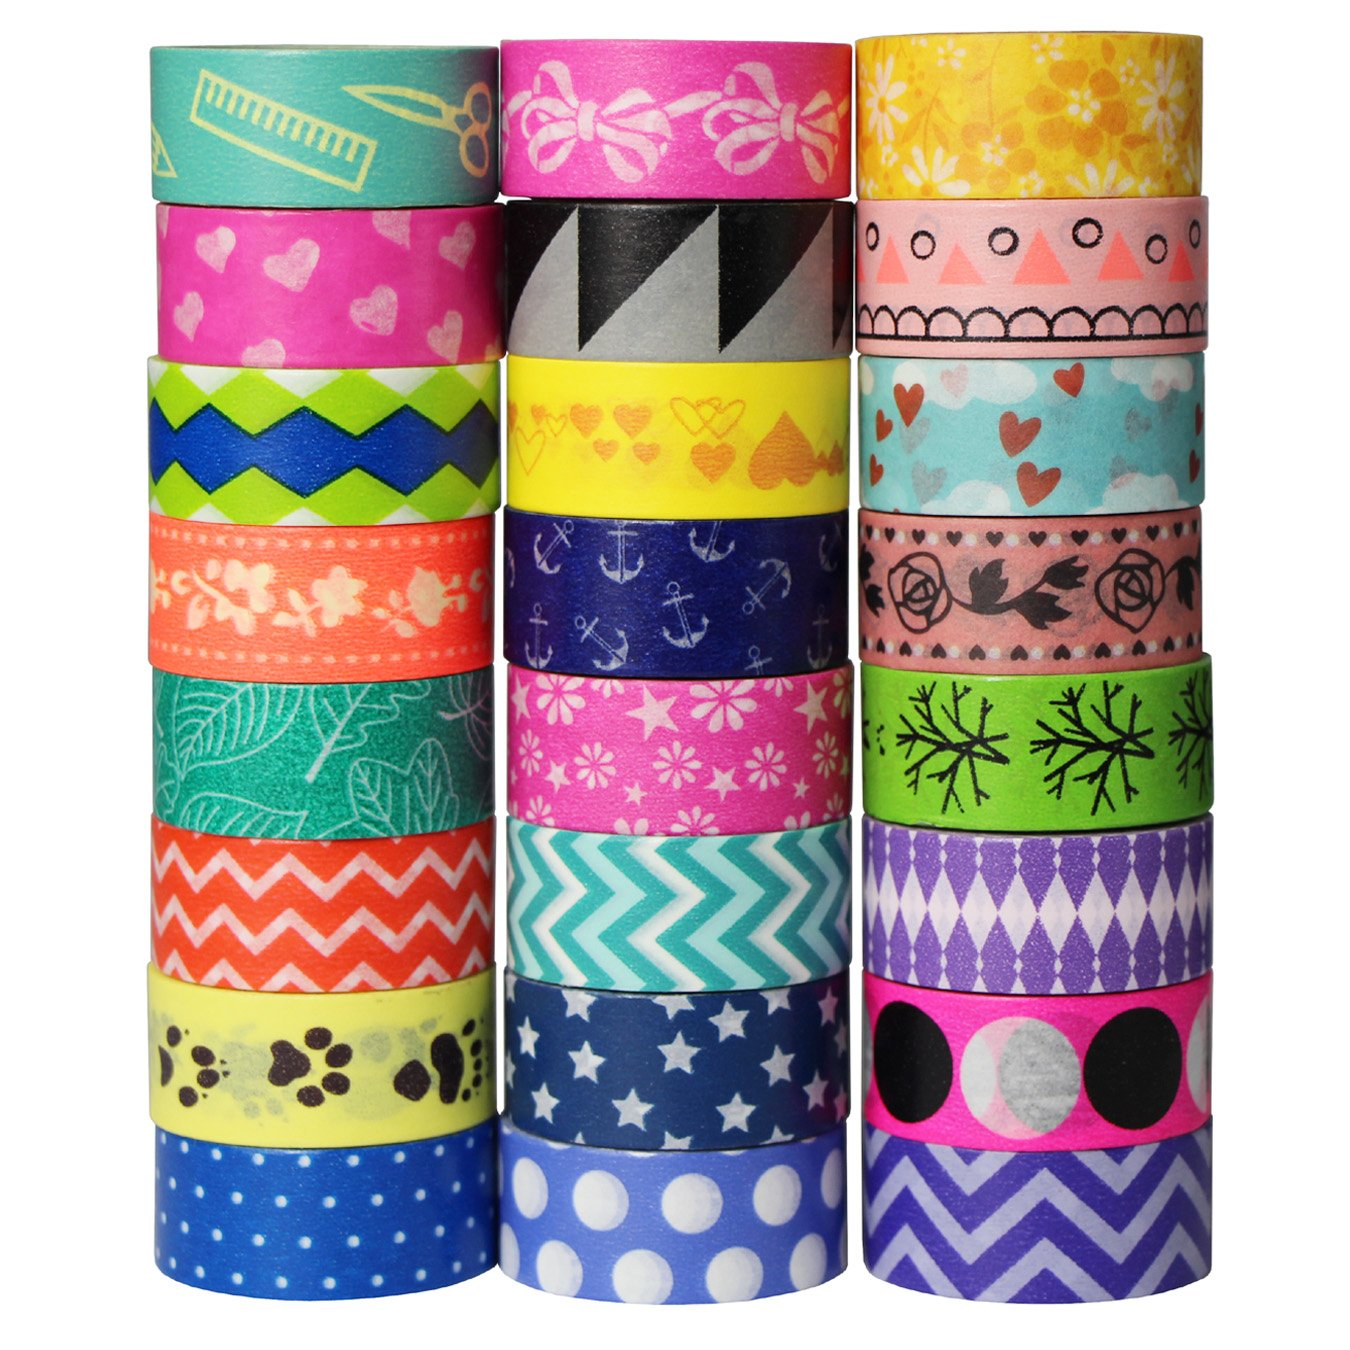 24 Rolls Decorative Washi Tape Set Masking Tape Sticker Tape Adhesive for DIY Decoration Scrapbooking Craft Gift (Design 9066) UOOOM 9039